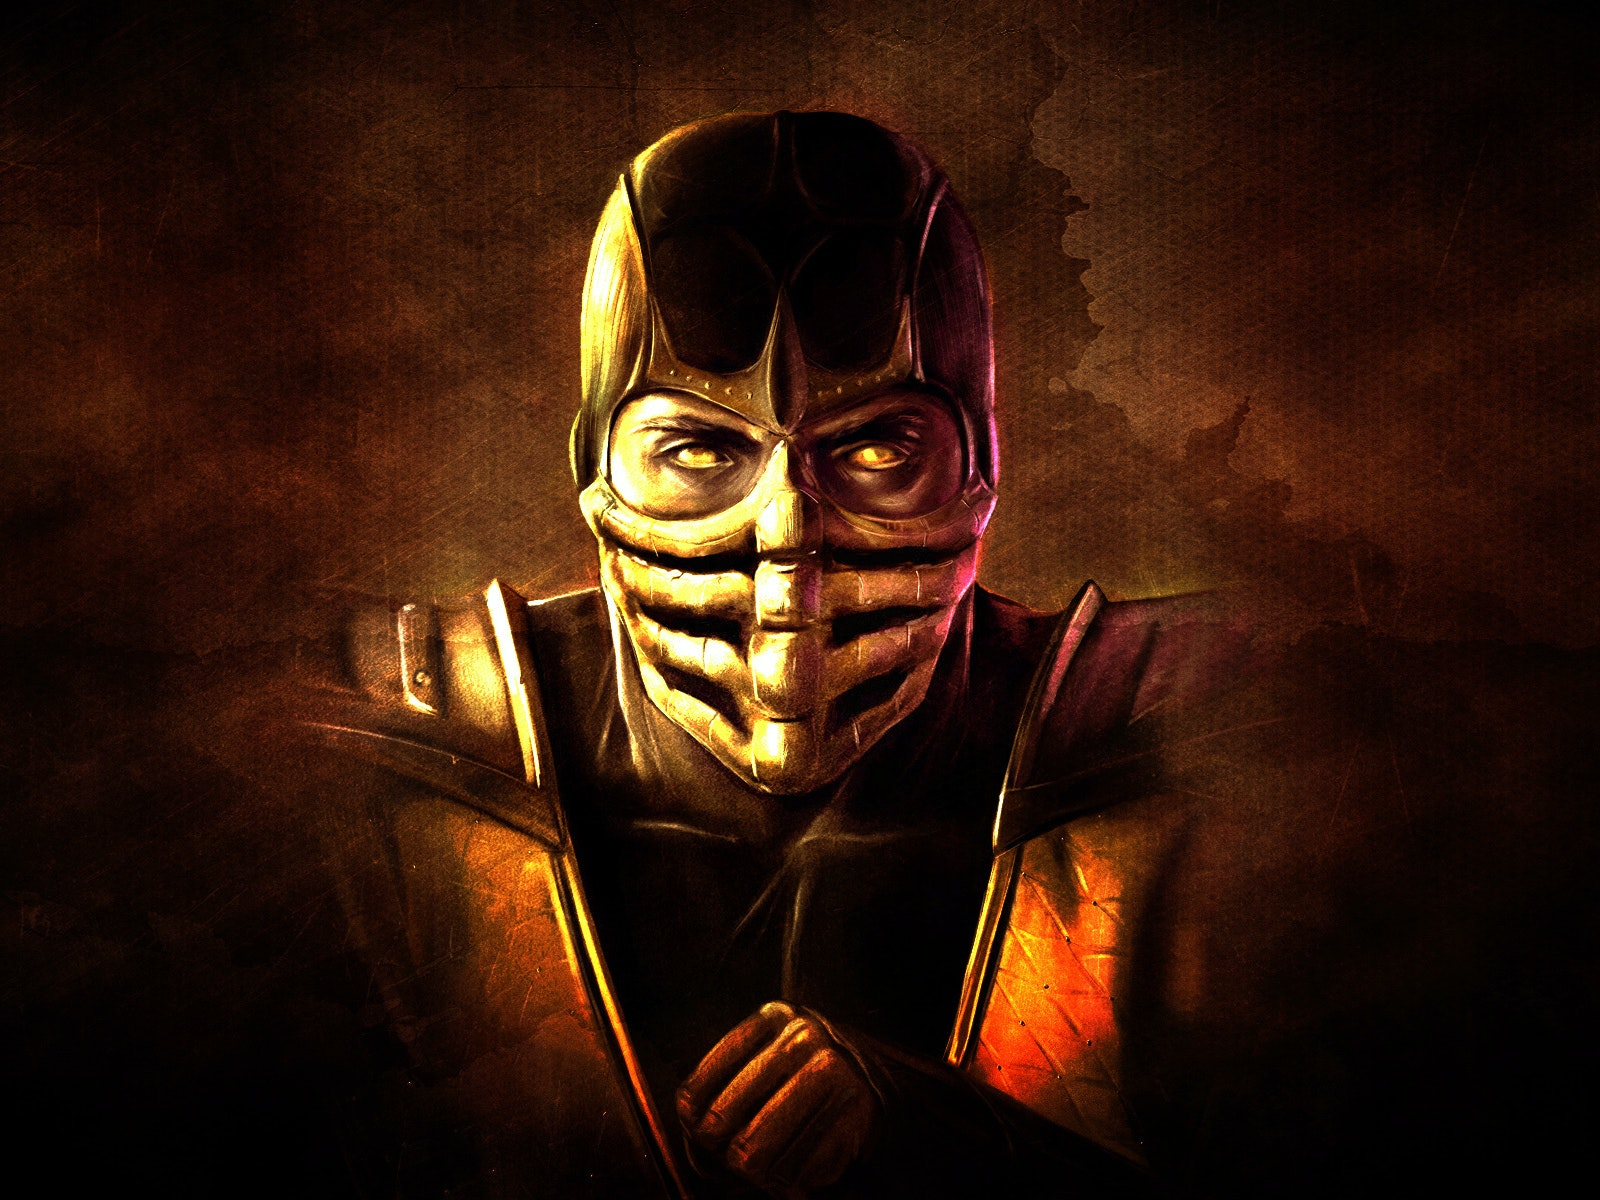 Mortal Kombat's Scorpion Tells Hillary Clinton to 'Finish Him'